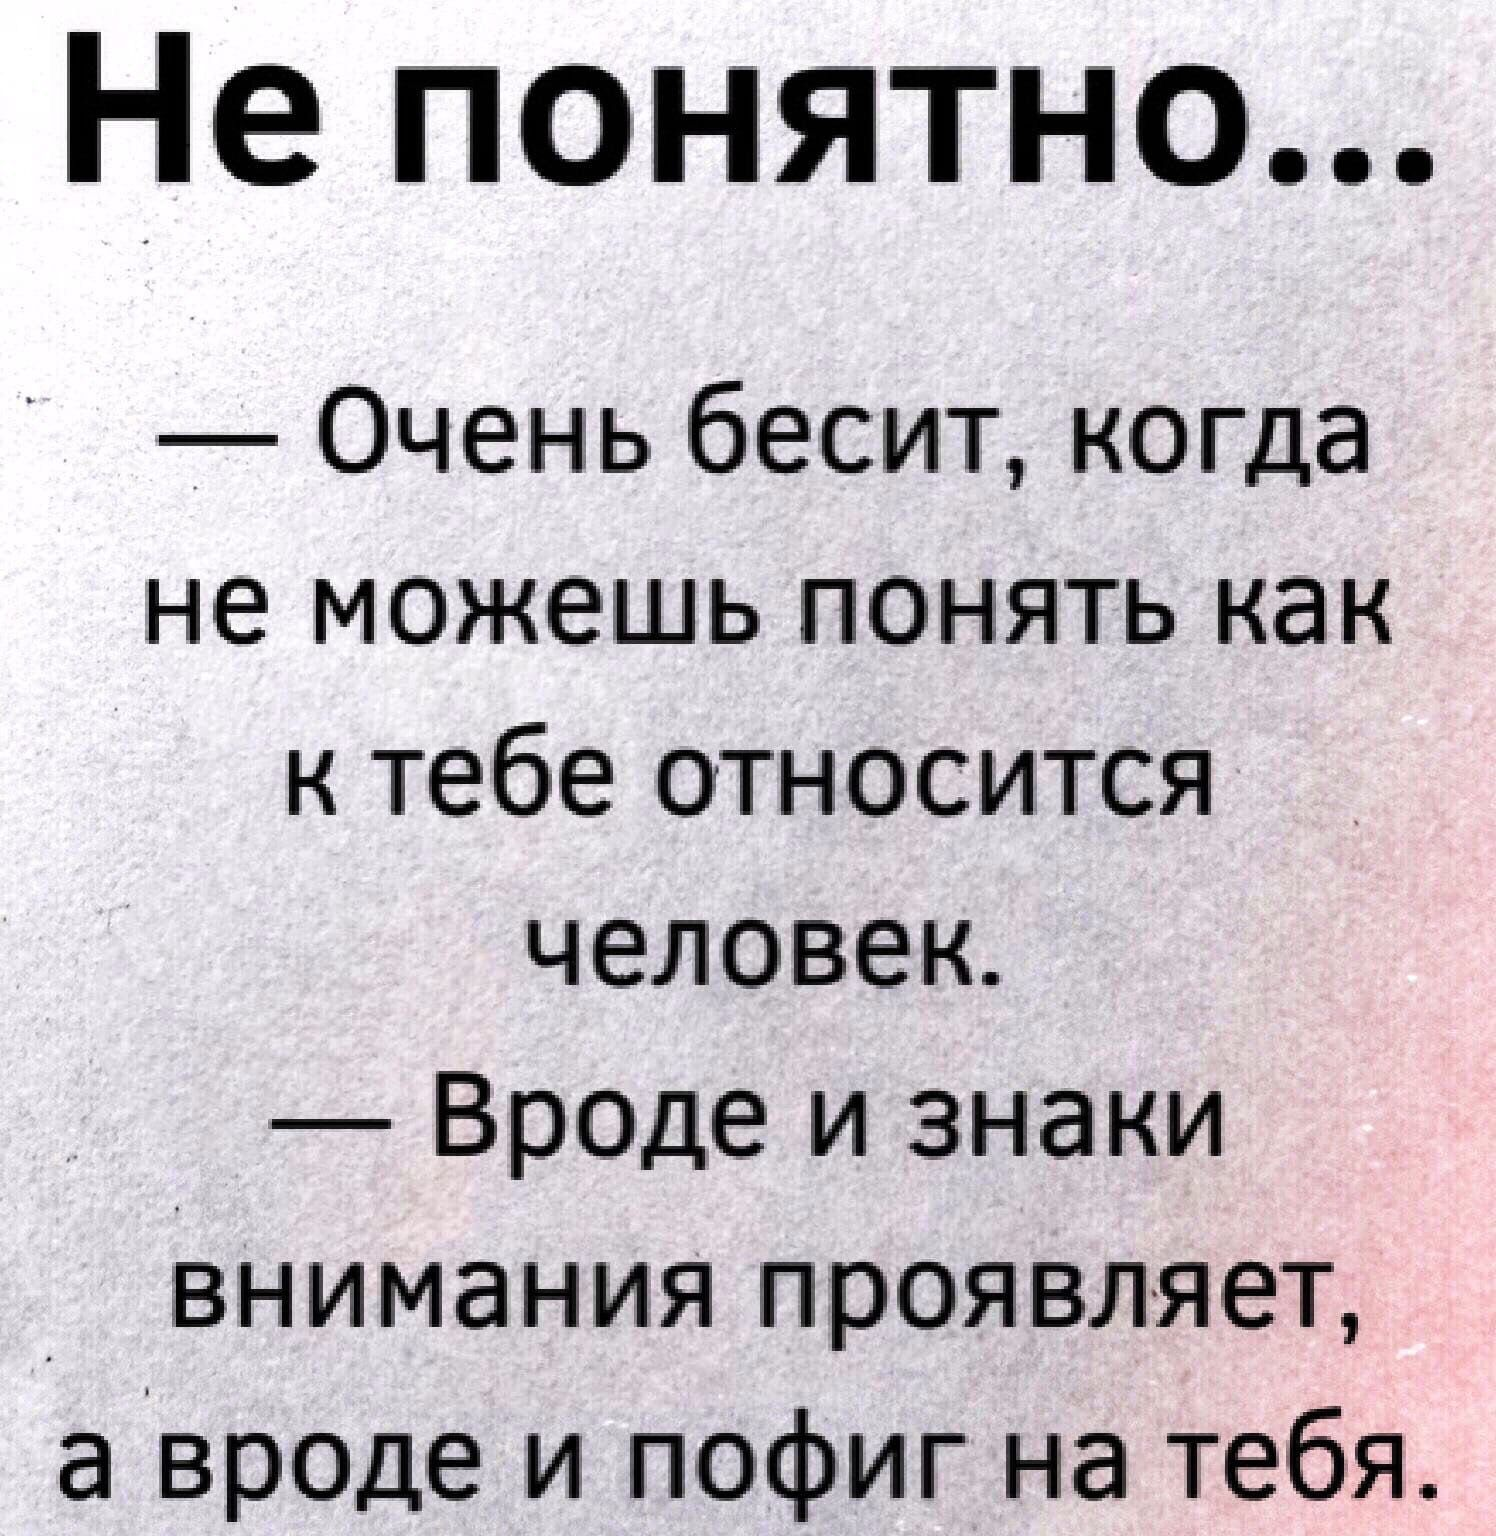 Pin By Valeria Oduschkin On Citaty Feelings Quotes Quotes And Notes Russian Quotes